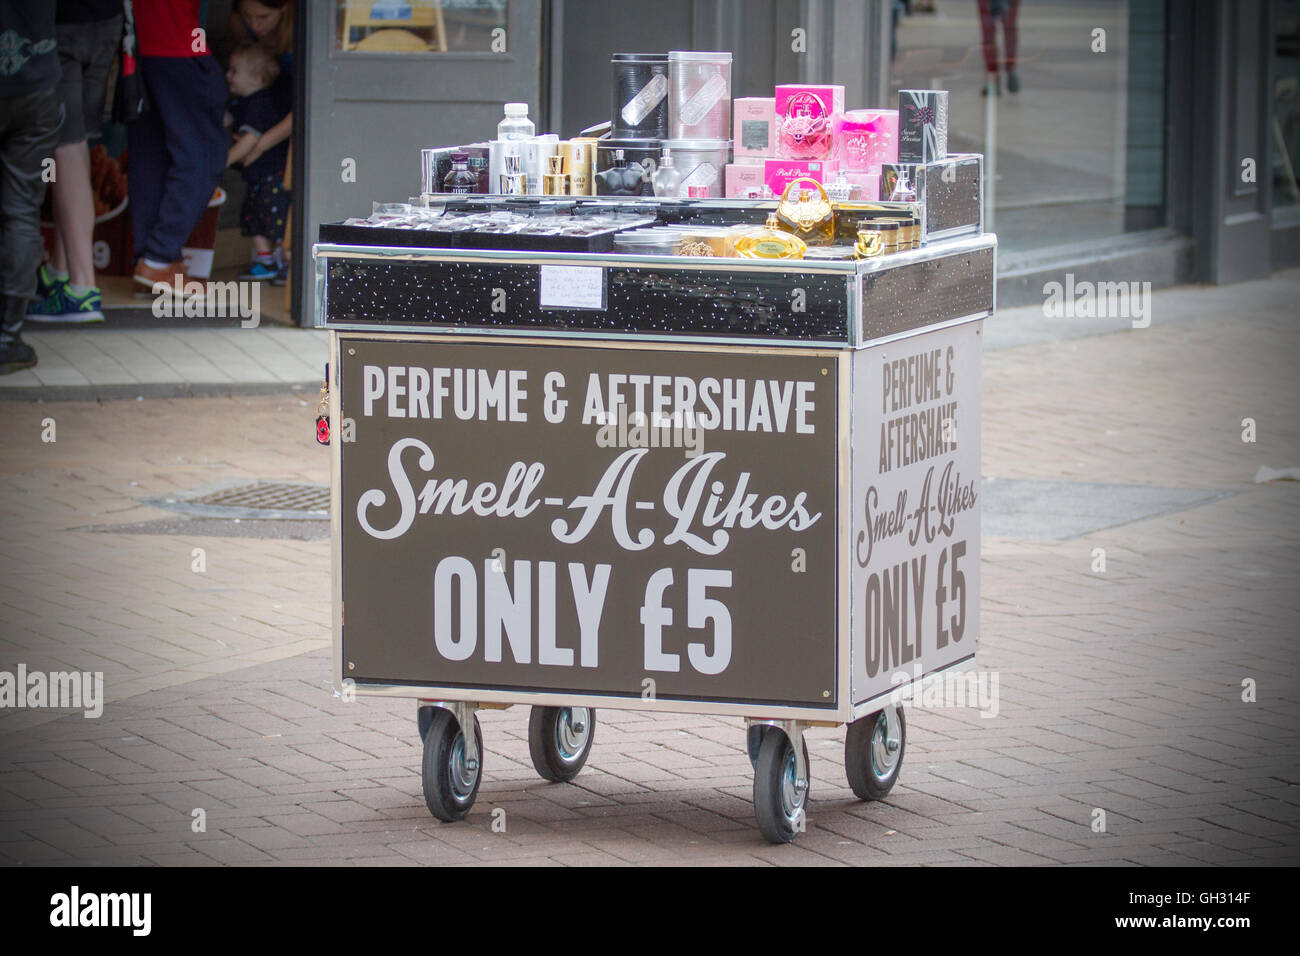 Trolley selling Mobile Perfume and Aftershave Smell-a-likes only £5 - Stock Image